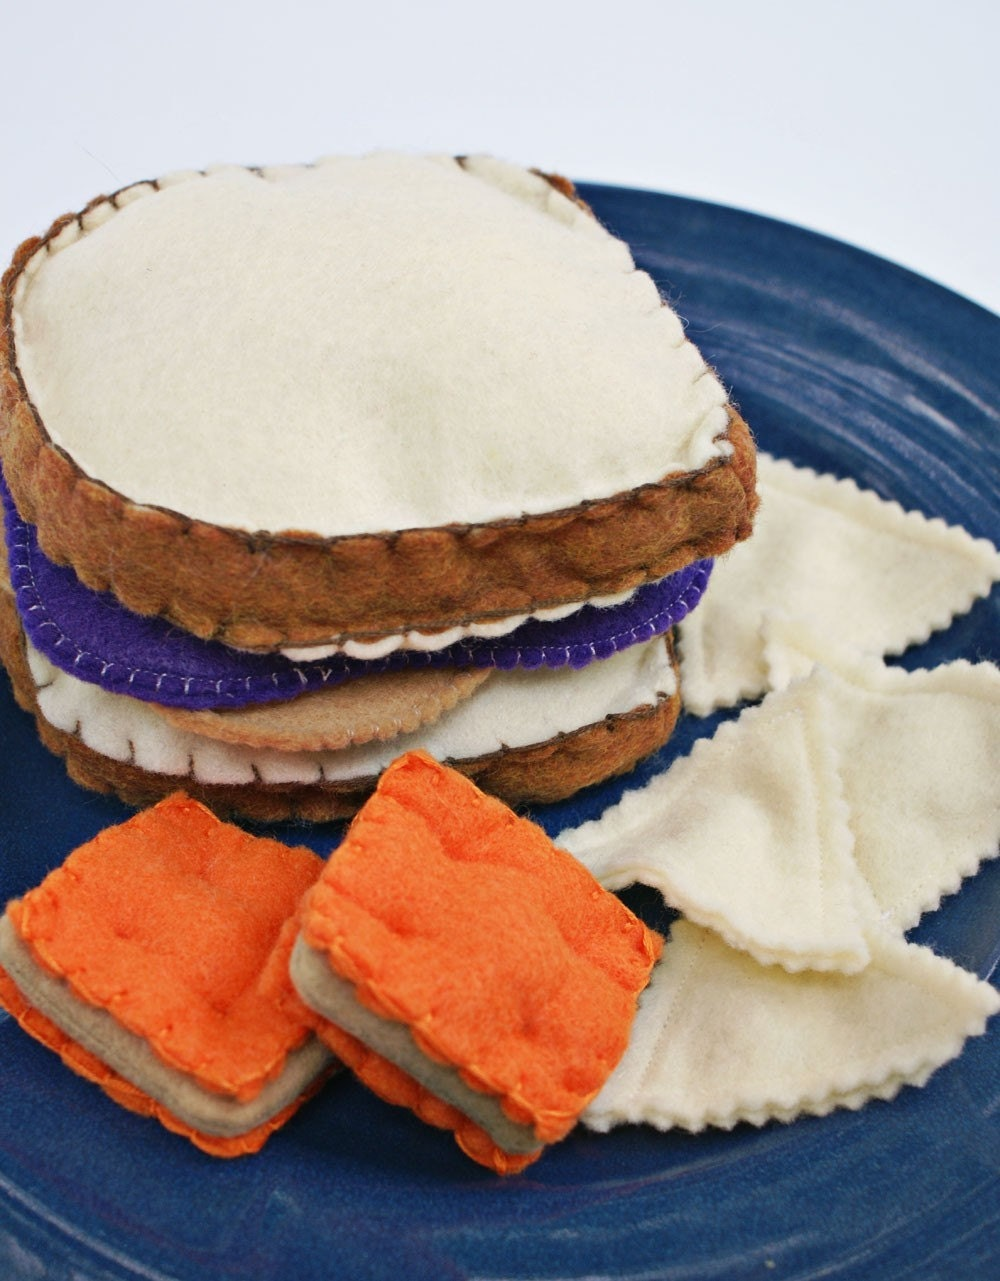 Felt Play Food Peanut Butter and Jelly Sandwich with Crackers and Tortilla Chips